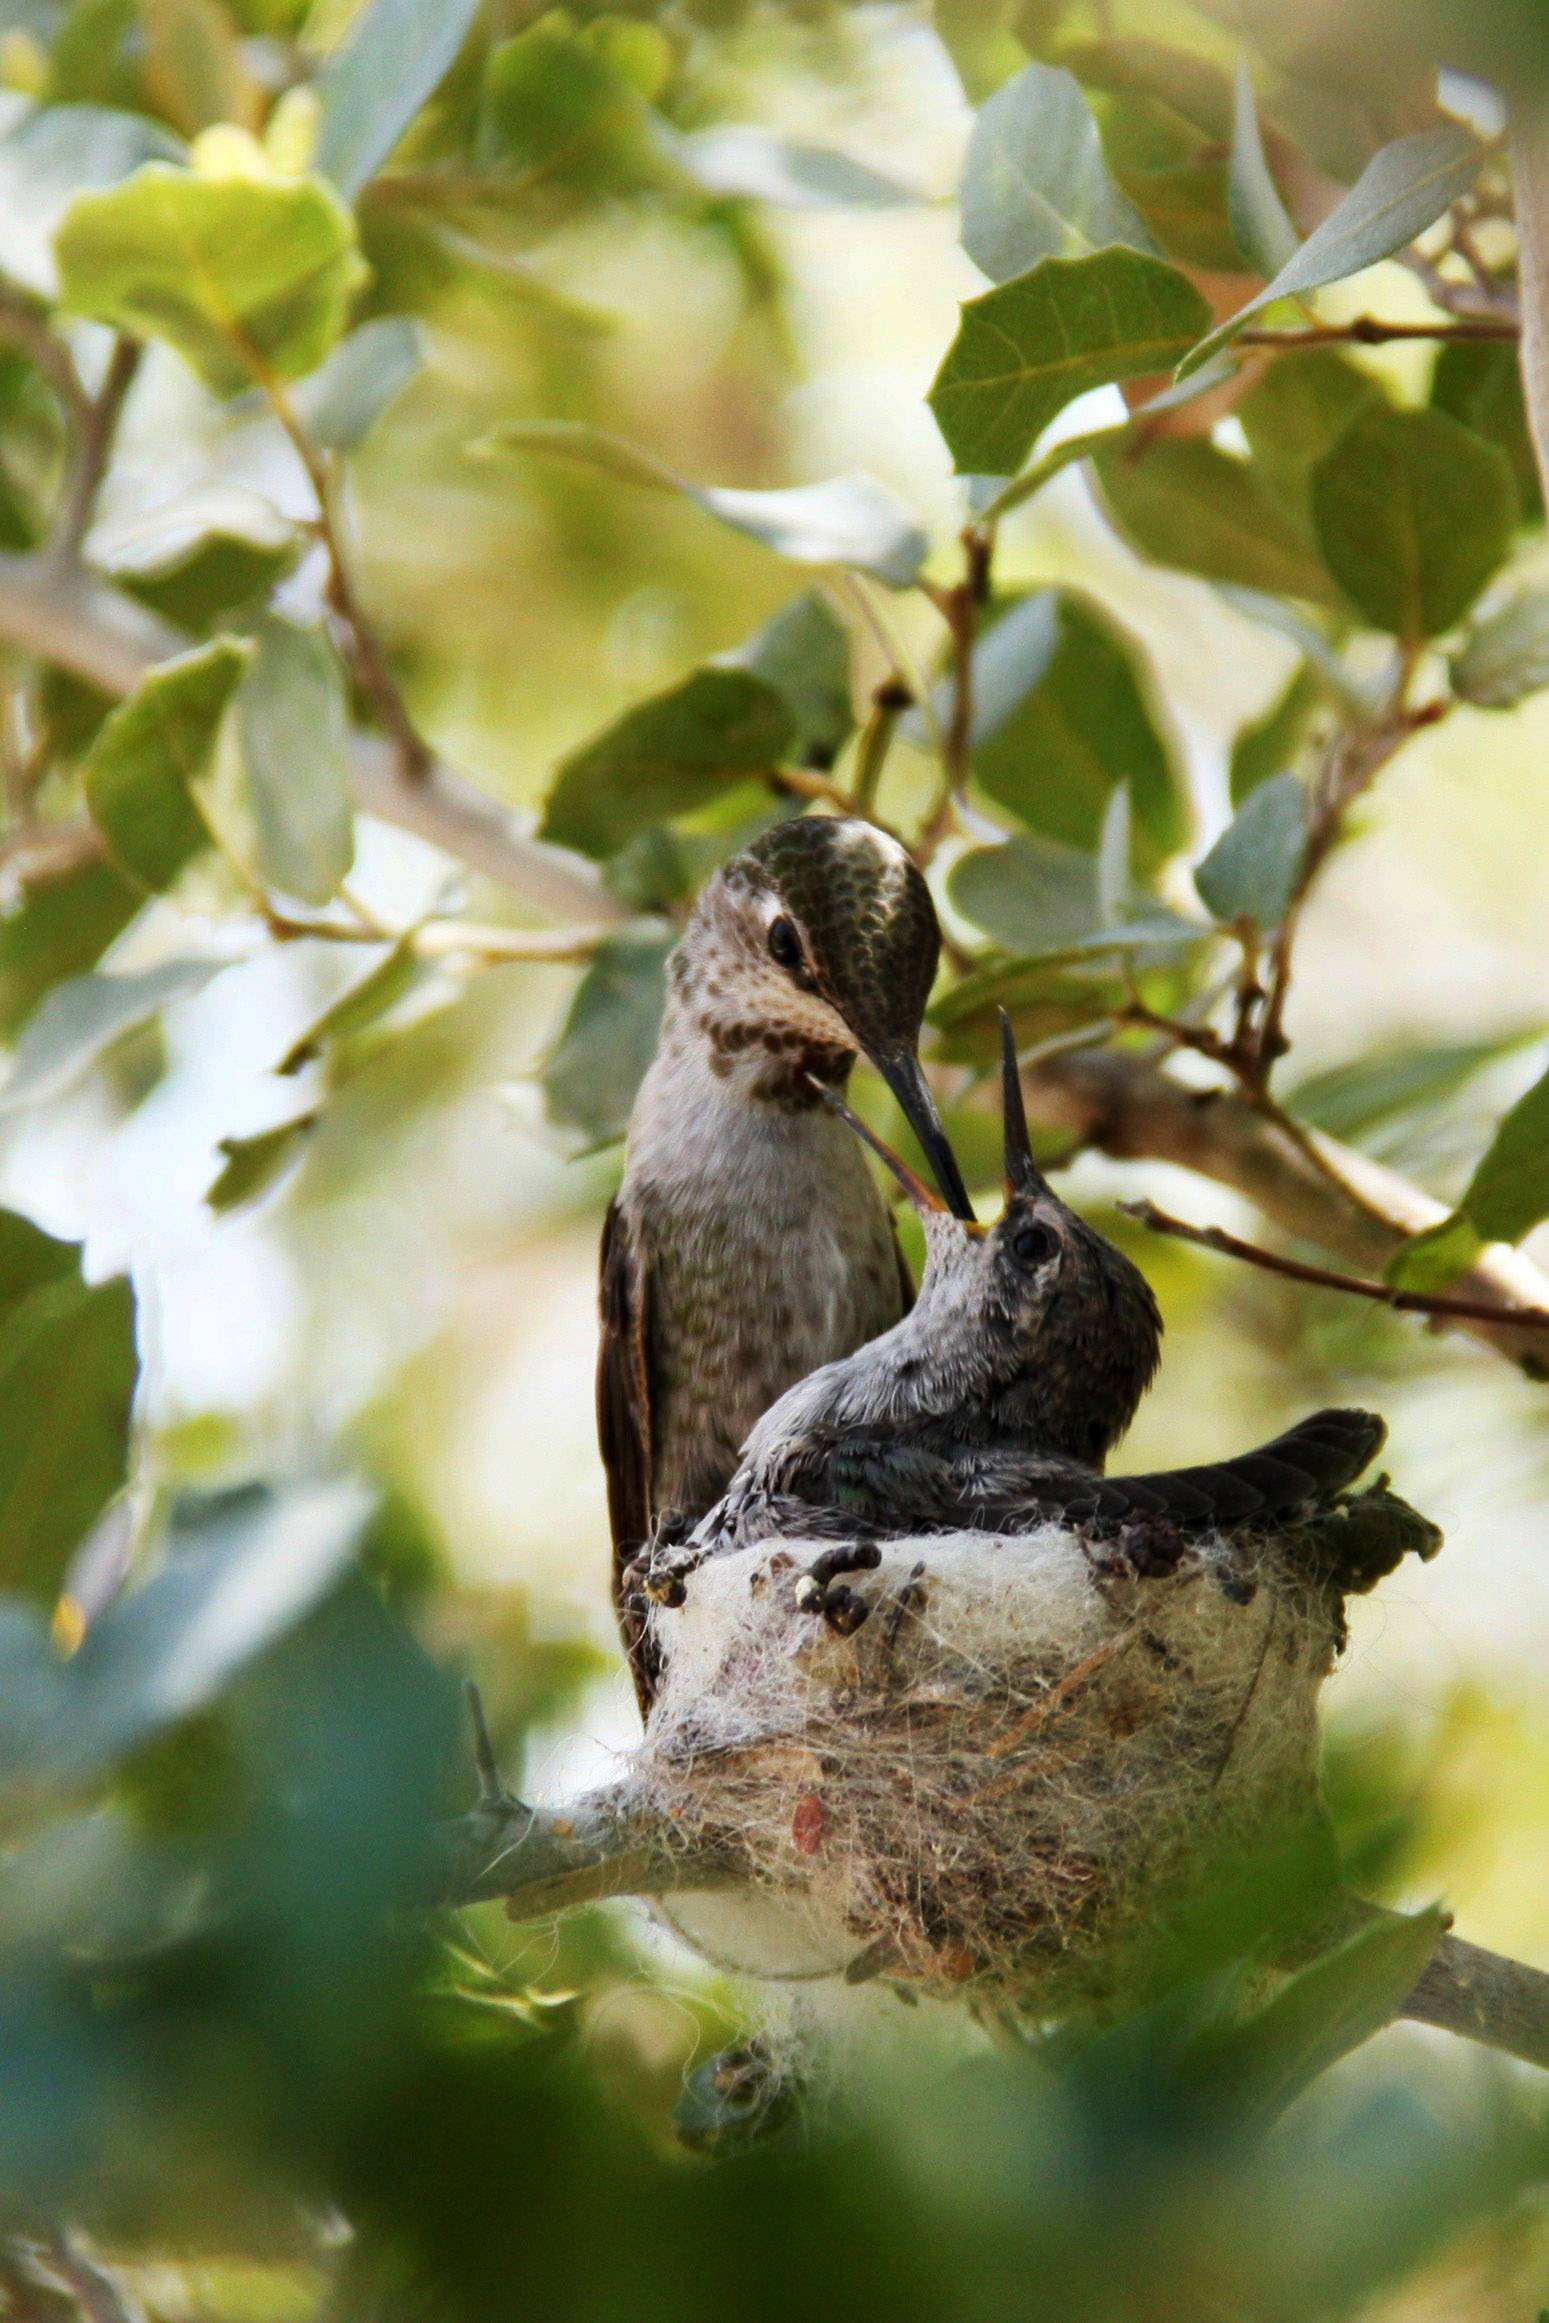 Mothers feed their young at the Hummingbird Aviary at the Arizona Sonora Desert Museum in Tucson, Ariz.